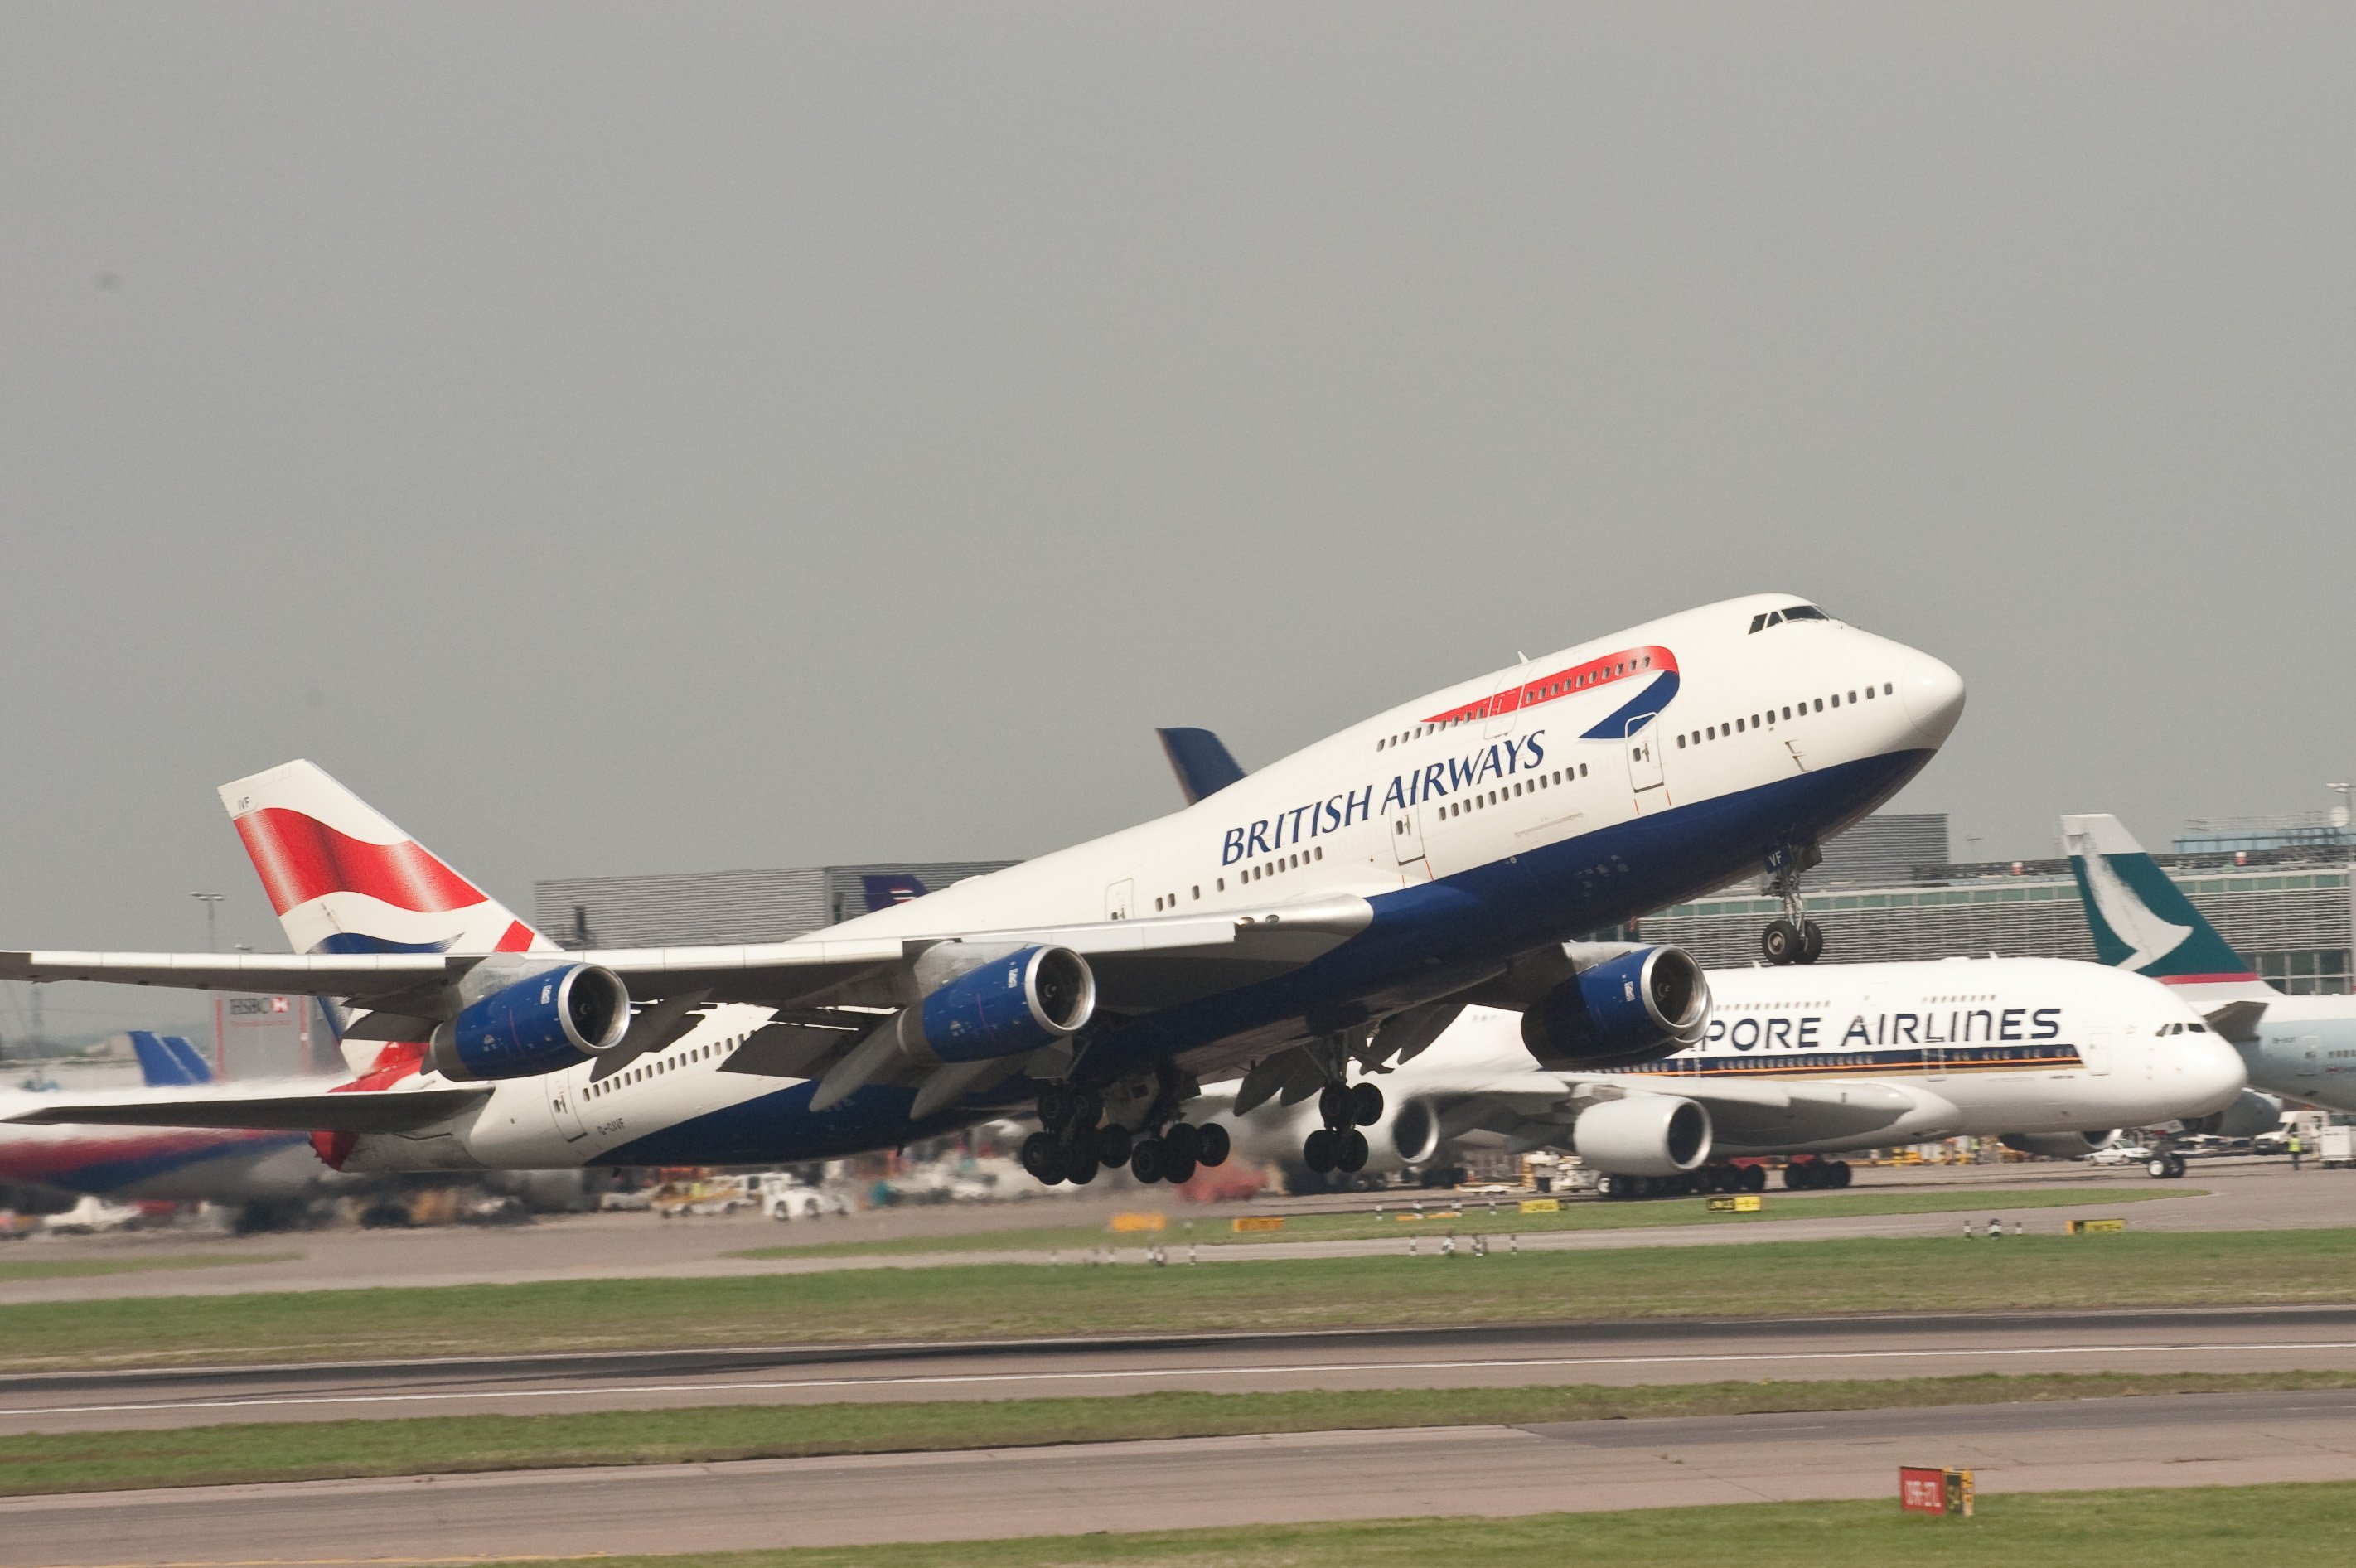 Could the Heathrow expansion be good for business? The airport could serve 10s of millions additional passengers and thousands of cargo flights a year after expansion. Image: Wikimedia commons.